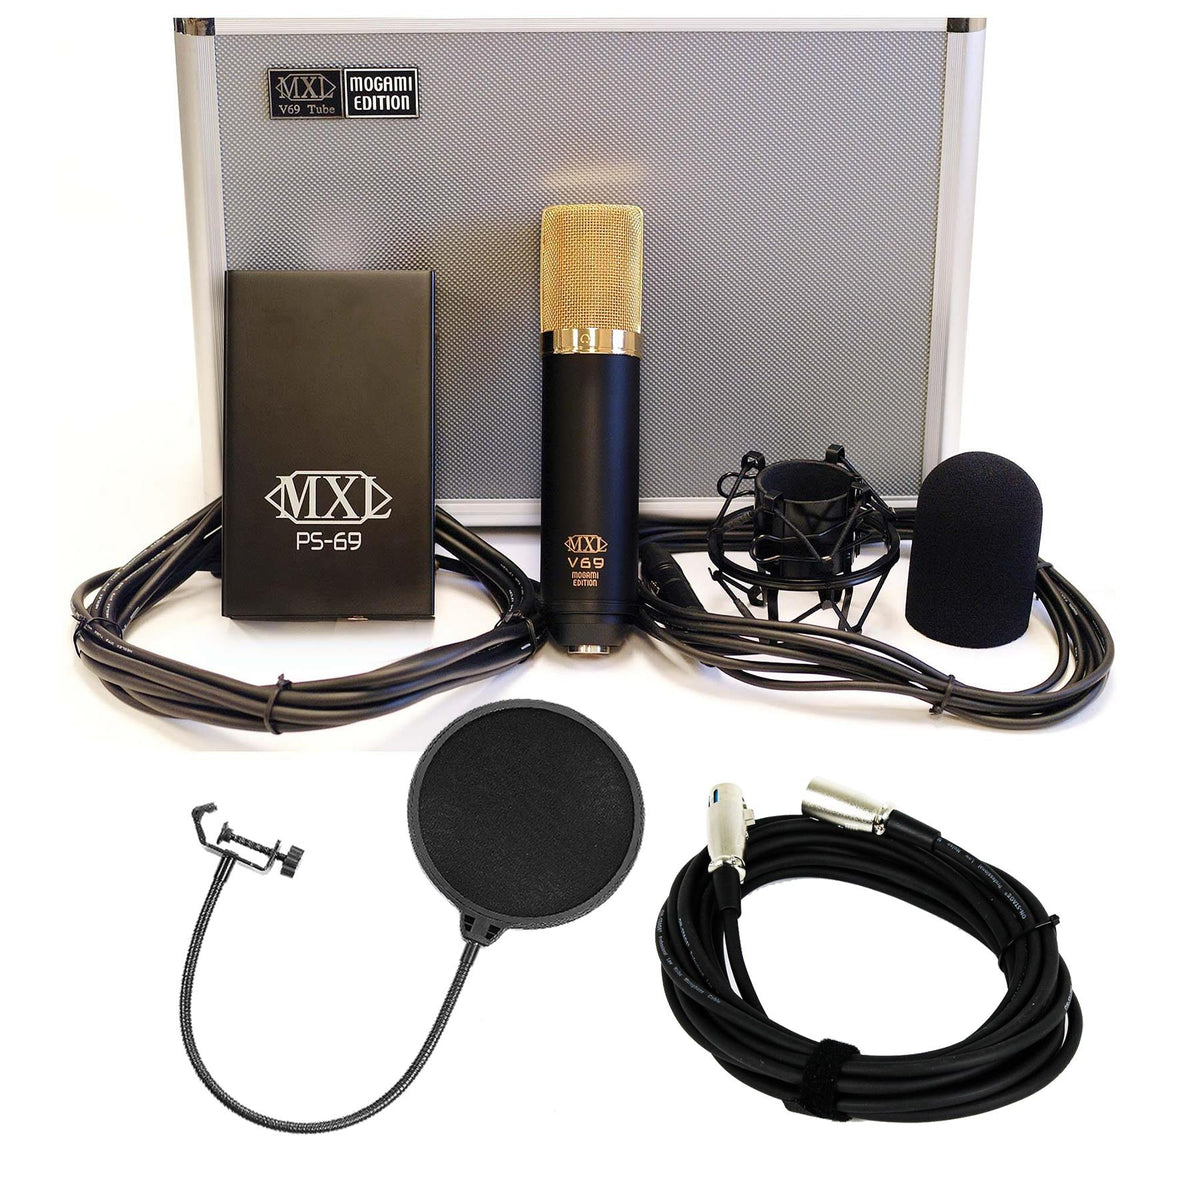 MXL V-69M-EDT Microphone Bundle with 20-foot XLR Cable & Pop Filter